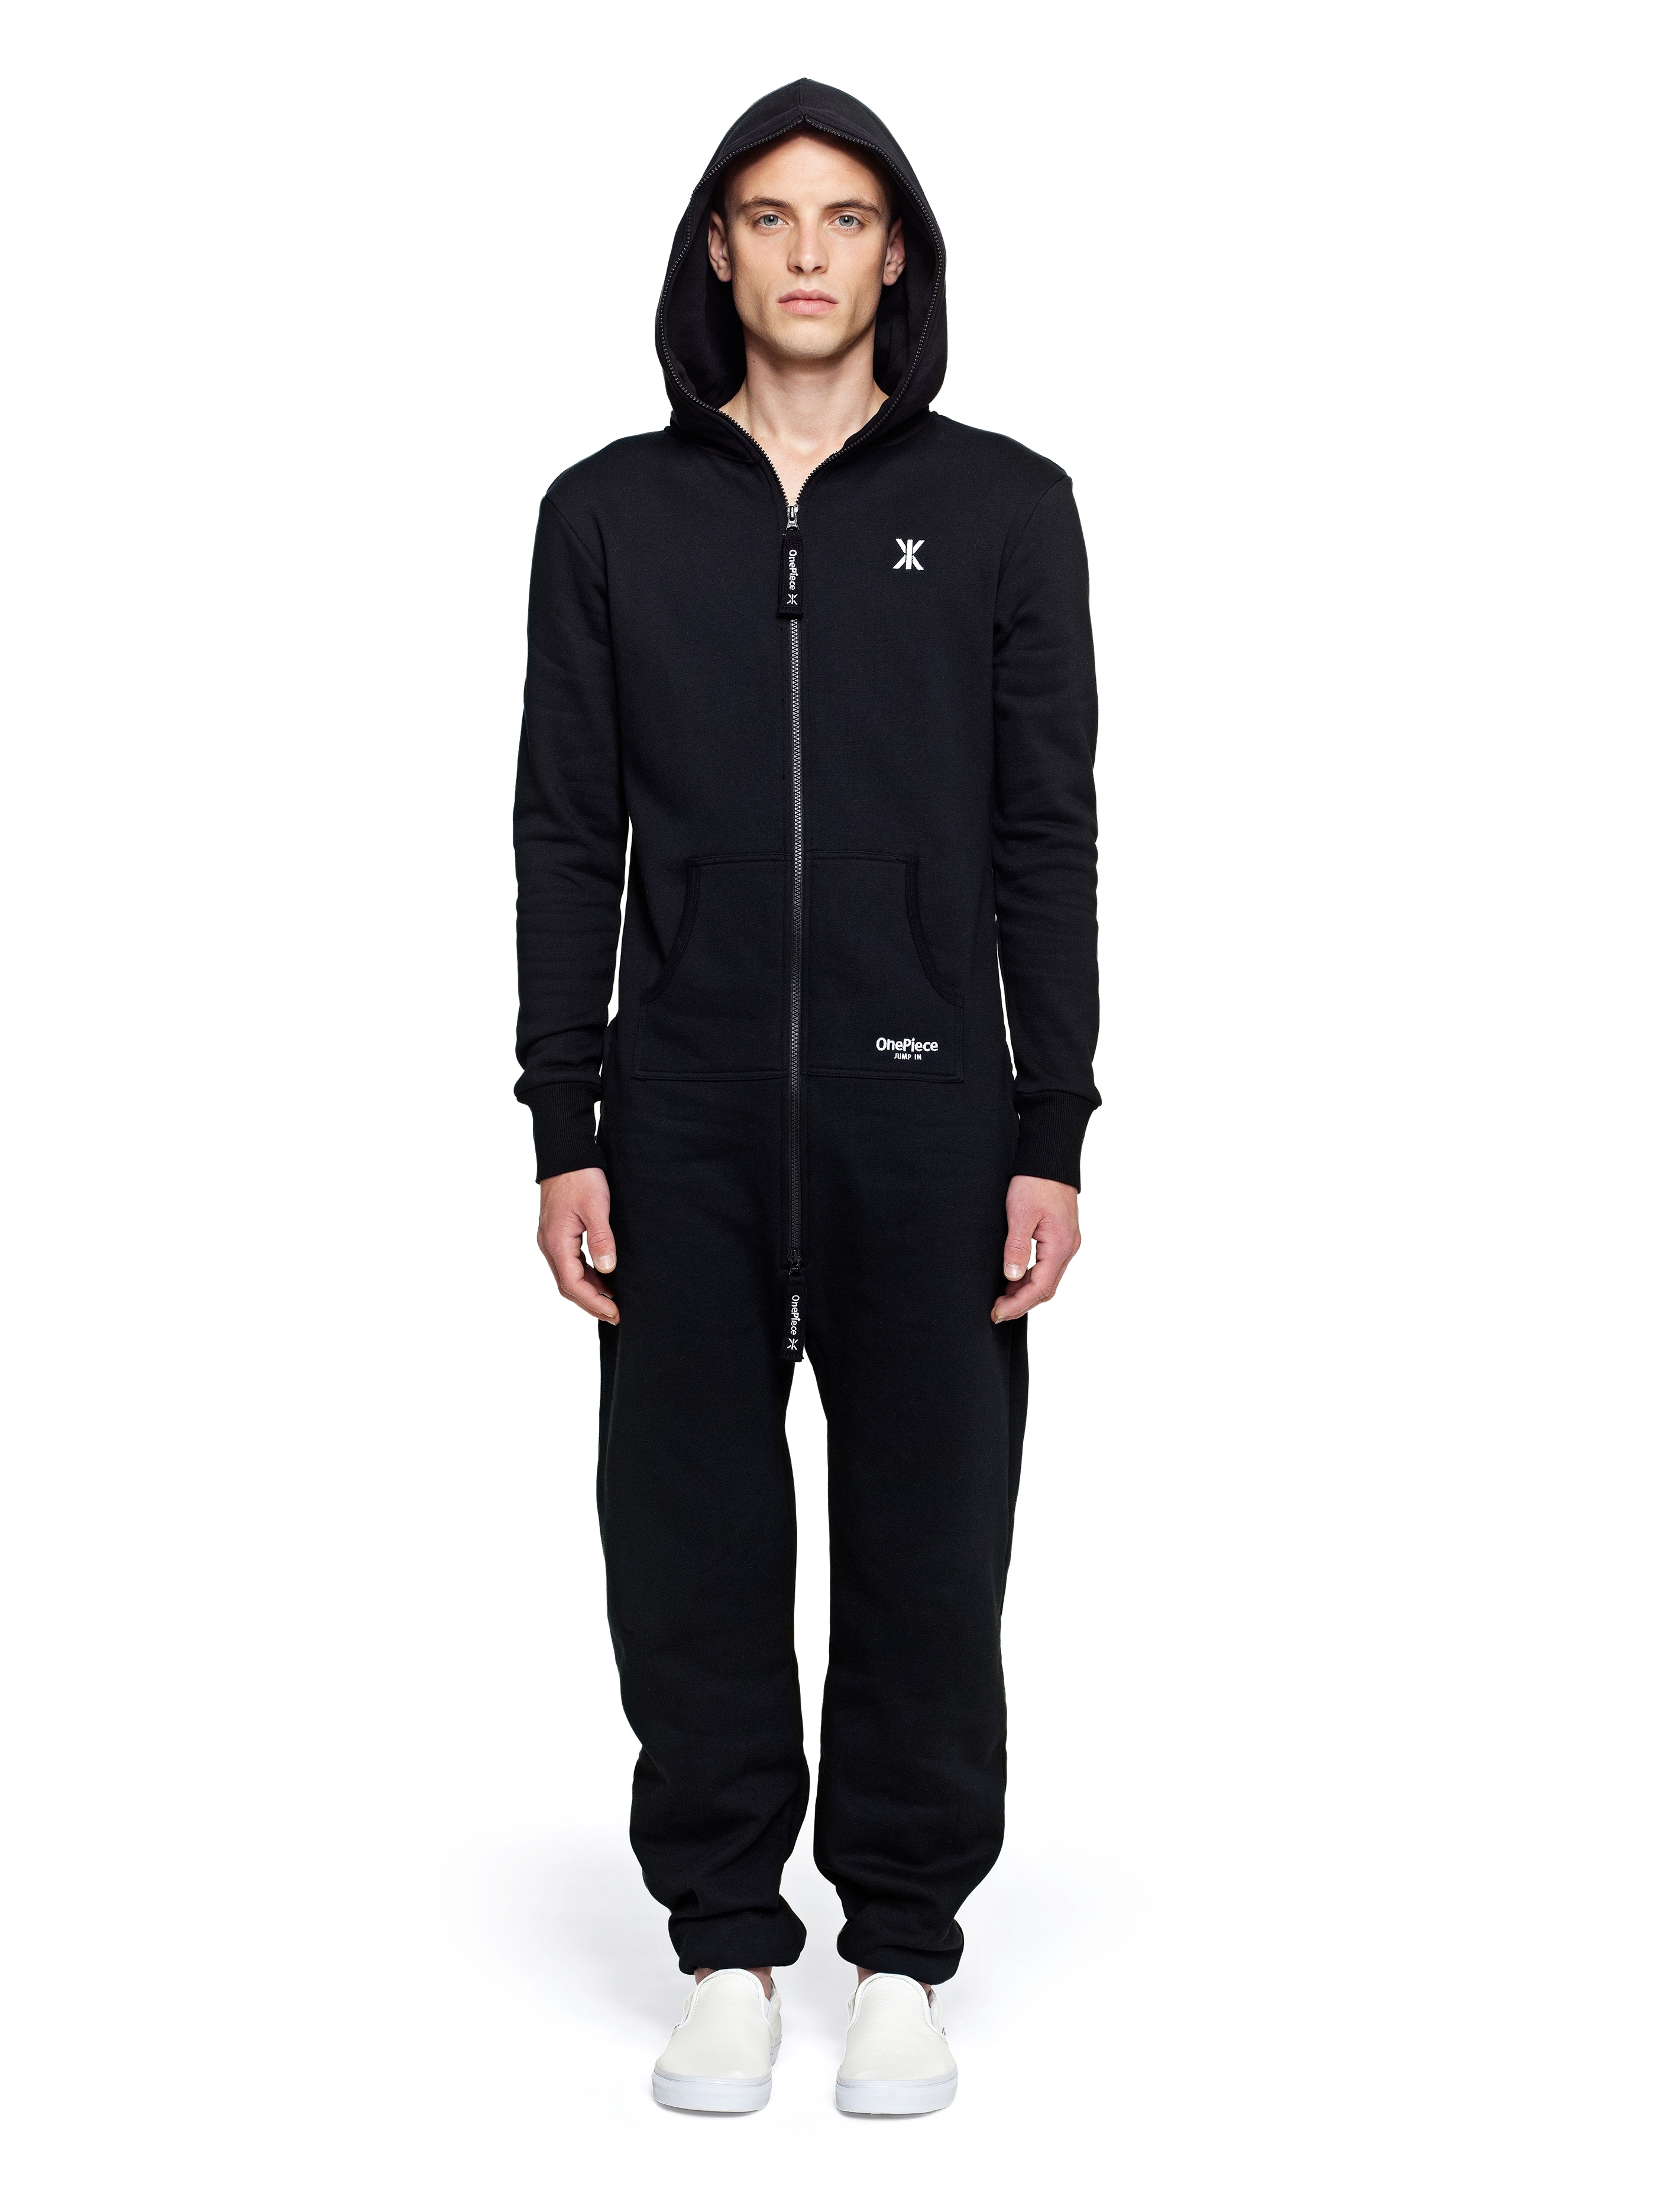 Bunny Onesie For Men by Blamo. Adult bunny onesie is handmade with knitted cotton in black or grey. One-piece rabbit jumpsuit designed with bendable foam ears and fluffy pom pom tail.